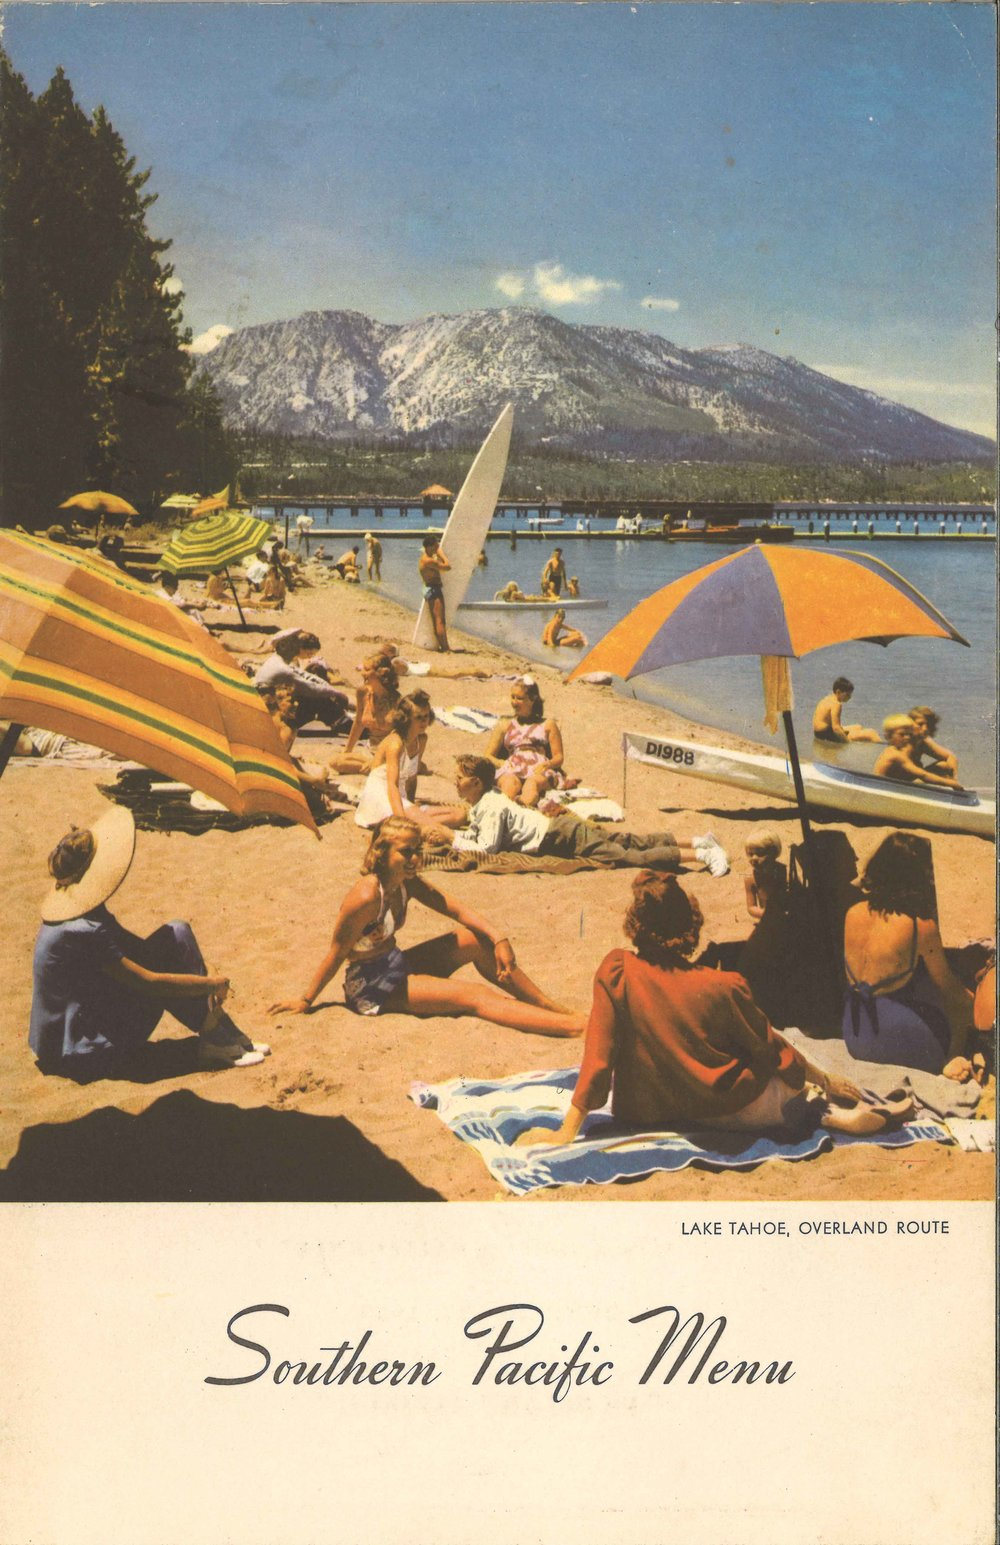 SP Lake Tahoe Beach Scene 1 small.jpg